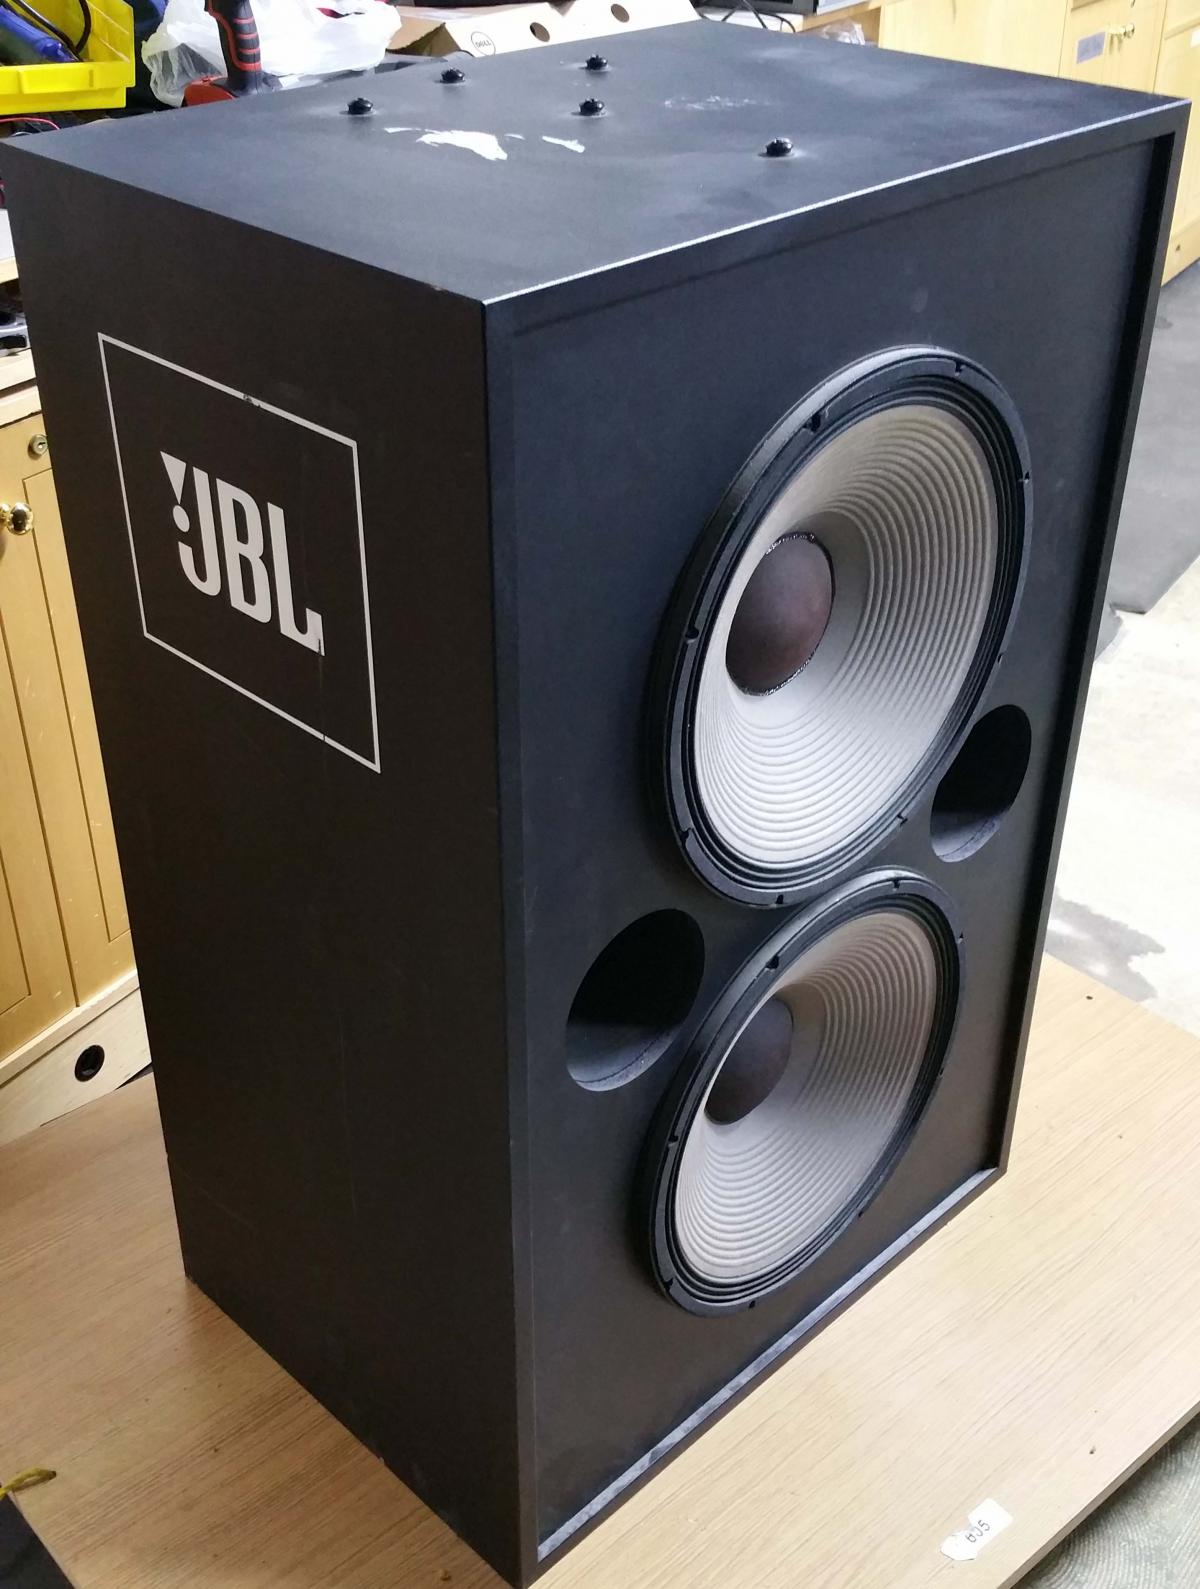 jbl 4648 subwoofer this is a monster price lowered and. Black Bedroom Furniture Sets. Home Design Ideas